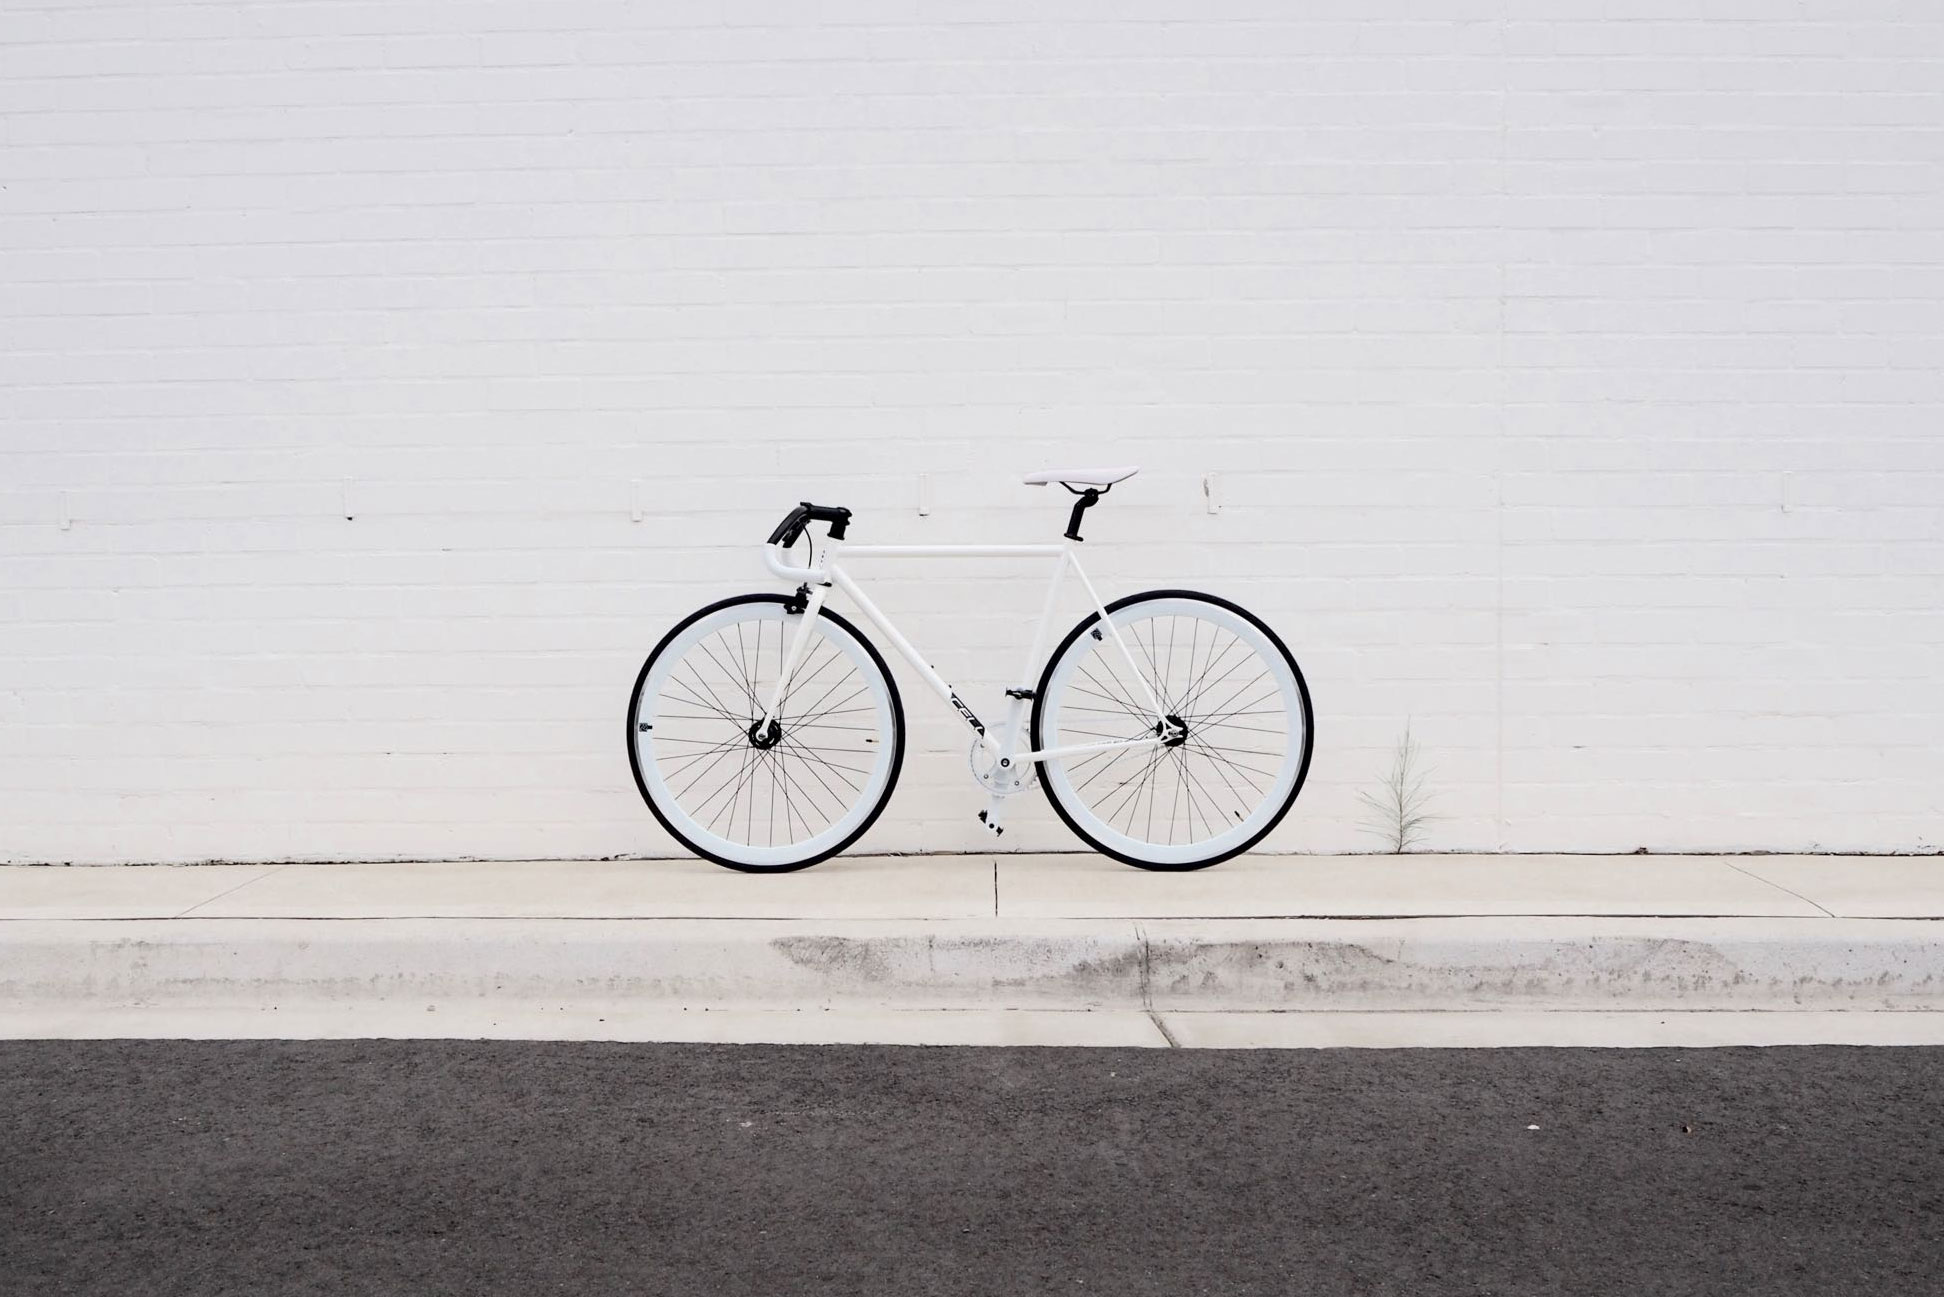 Sleek Bikes For Summer Rides